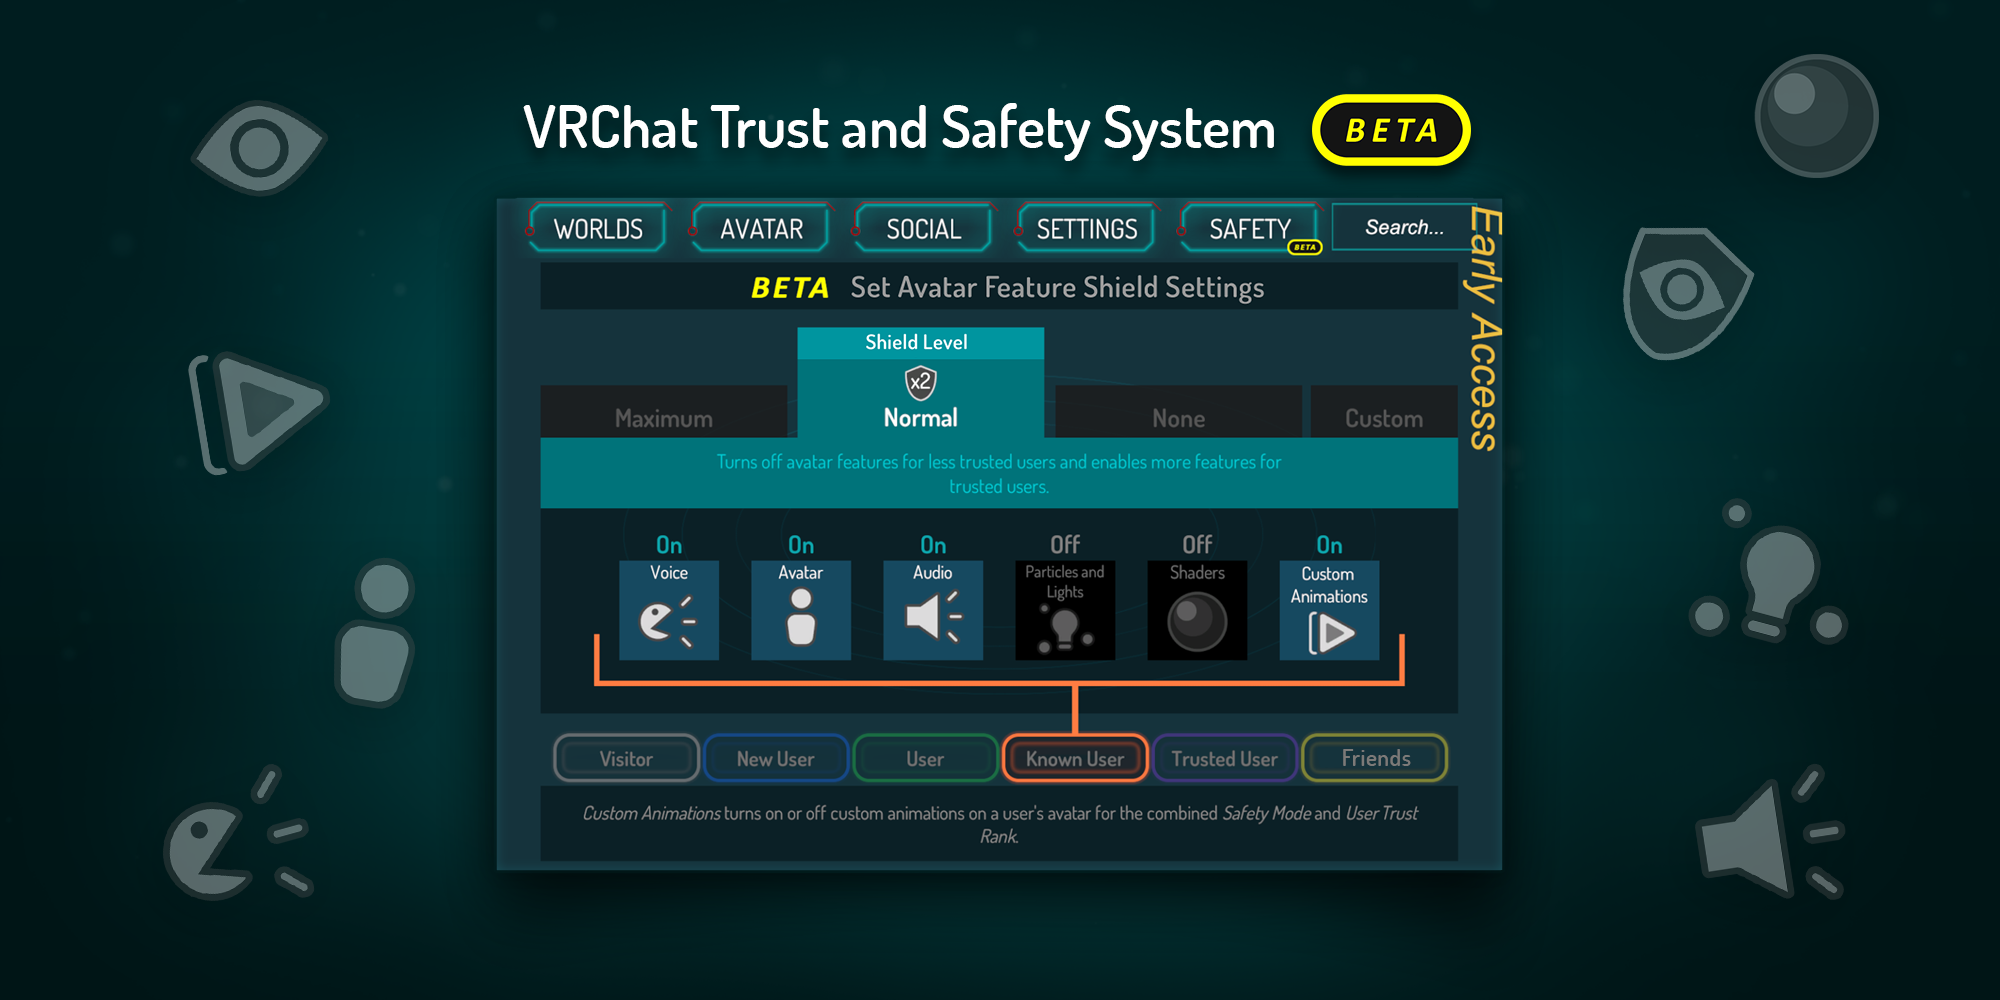 VRChat Safety and Trust System